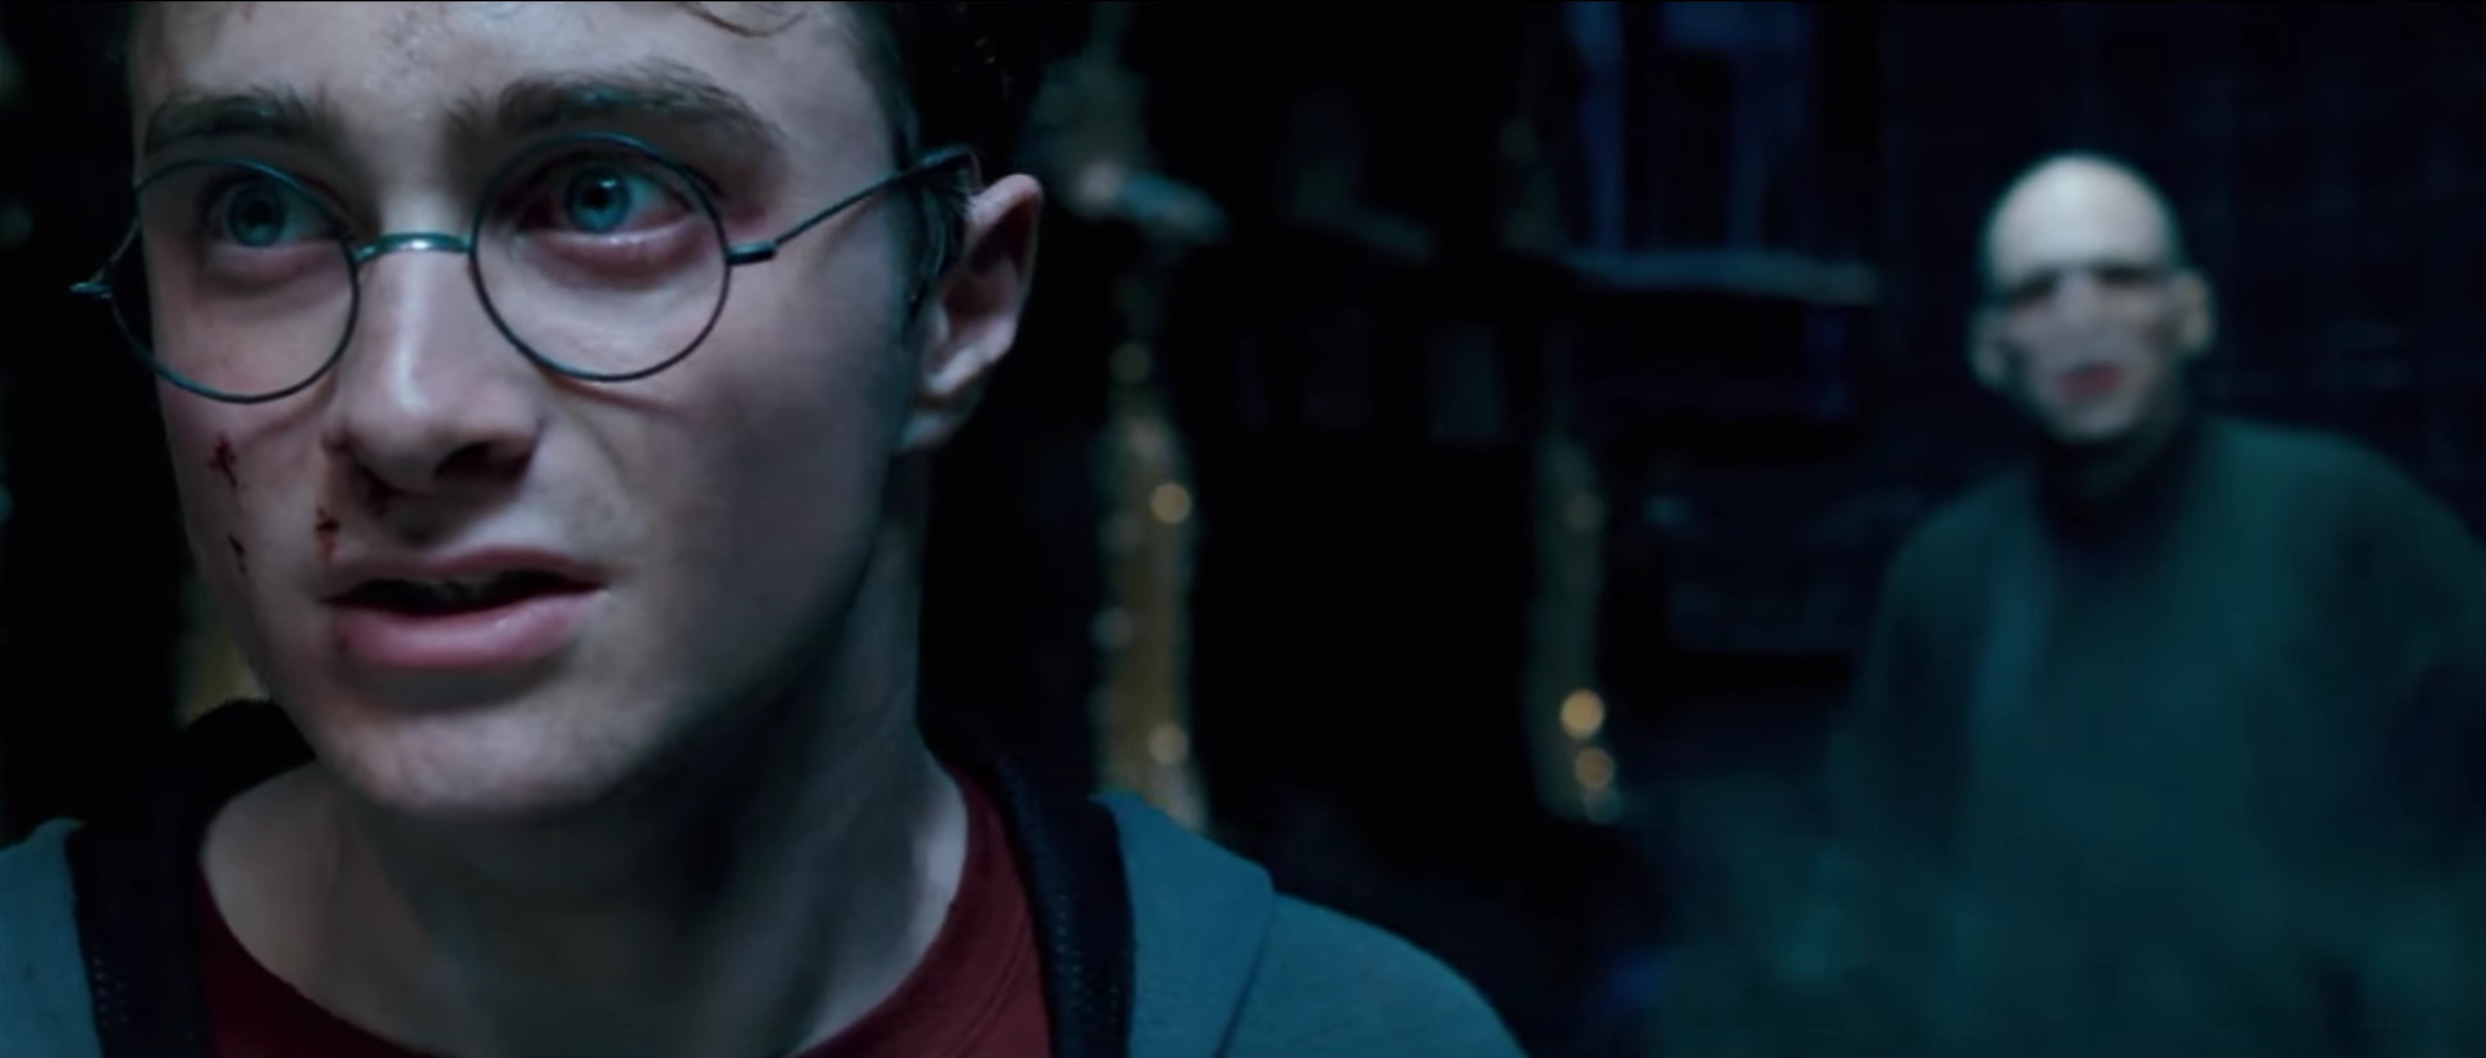 """Someone made a """"Harry Potter"""" trailer that channels """"Star Wars"""" vibes in the best way"""